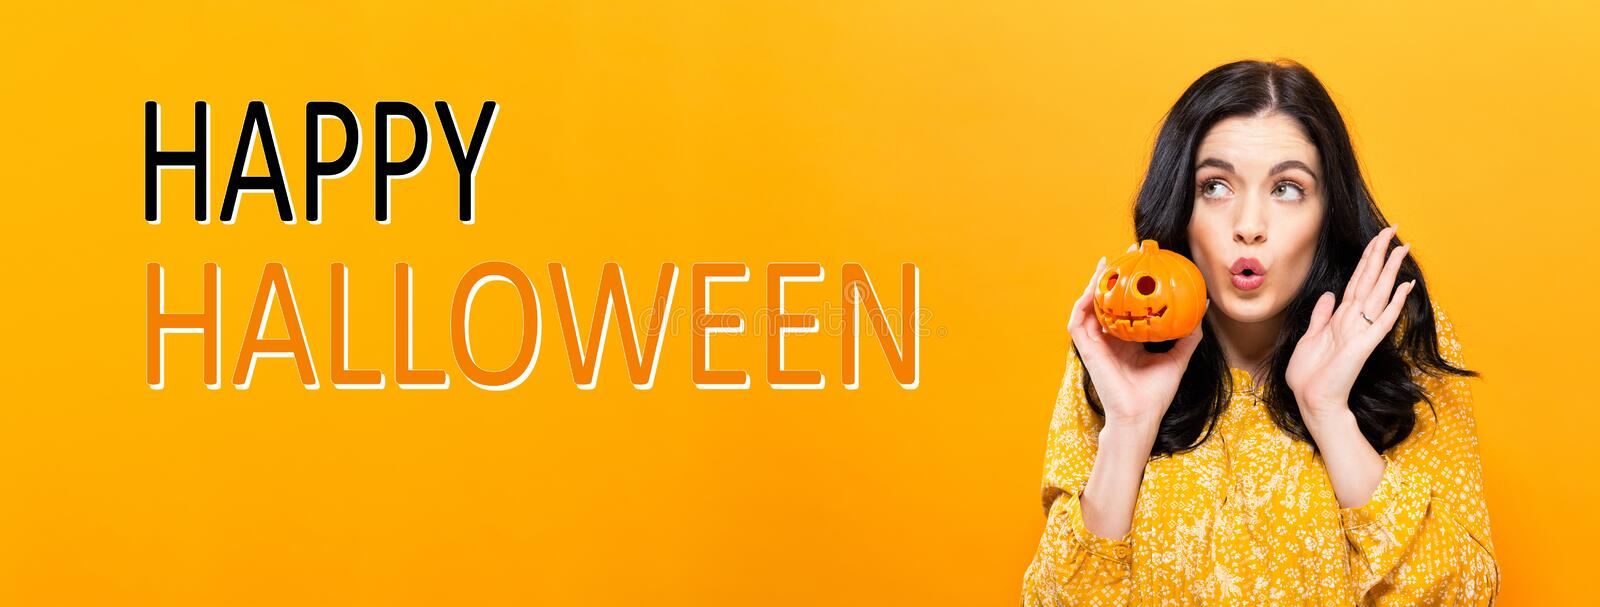 Happy Halloween with woman holding a pumpkin stock photography